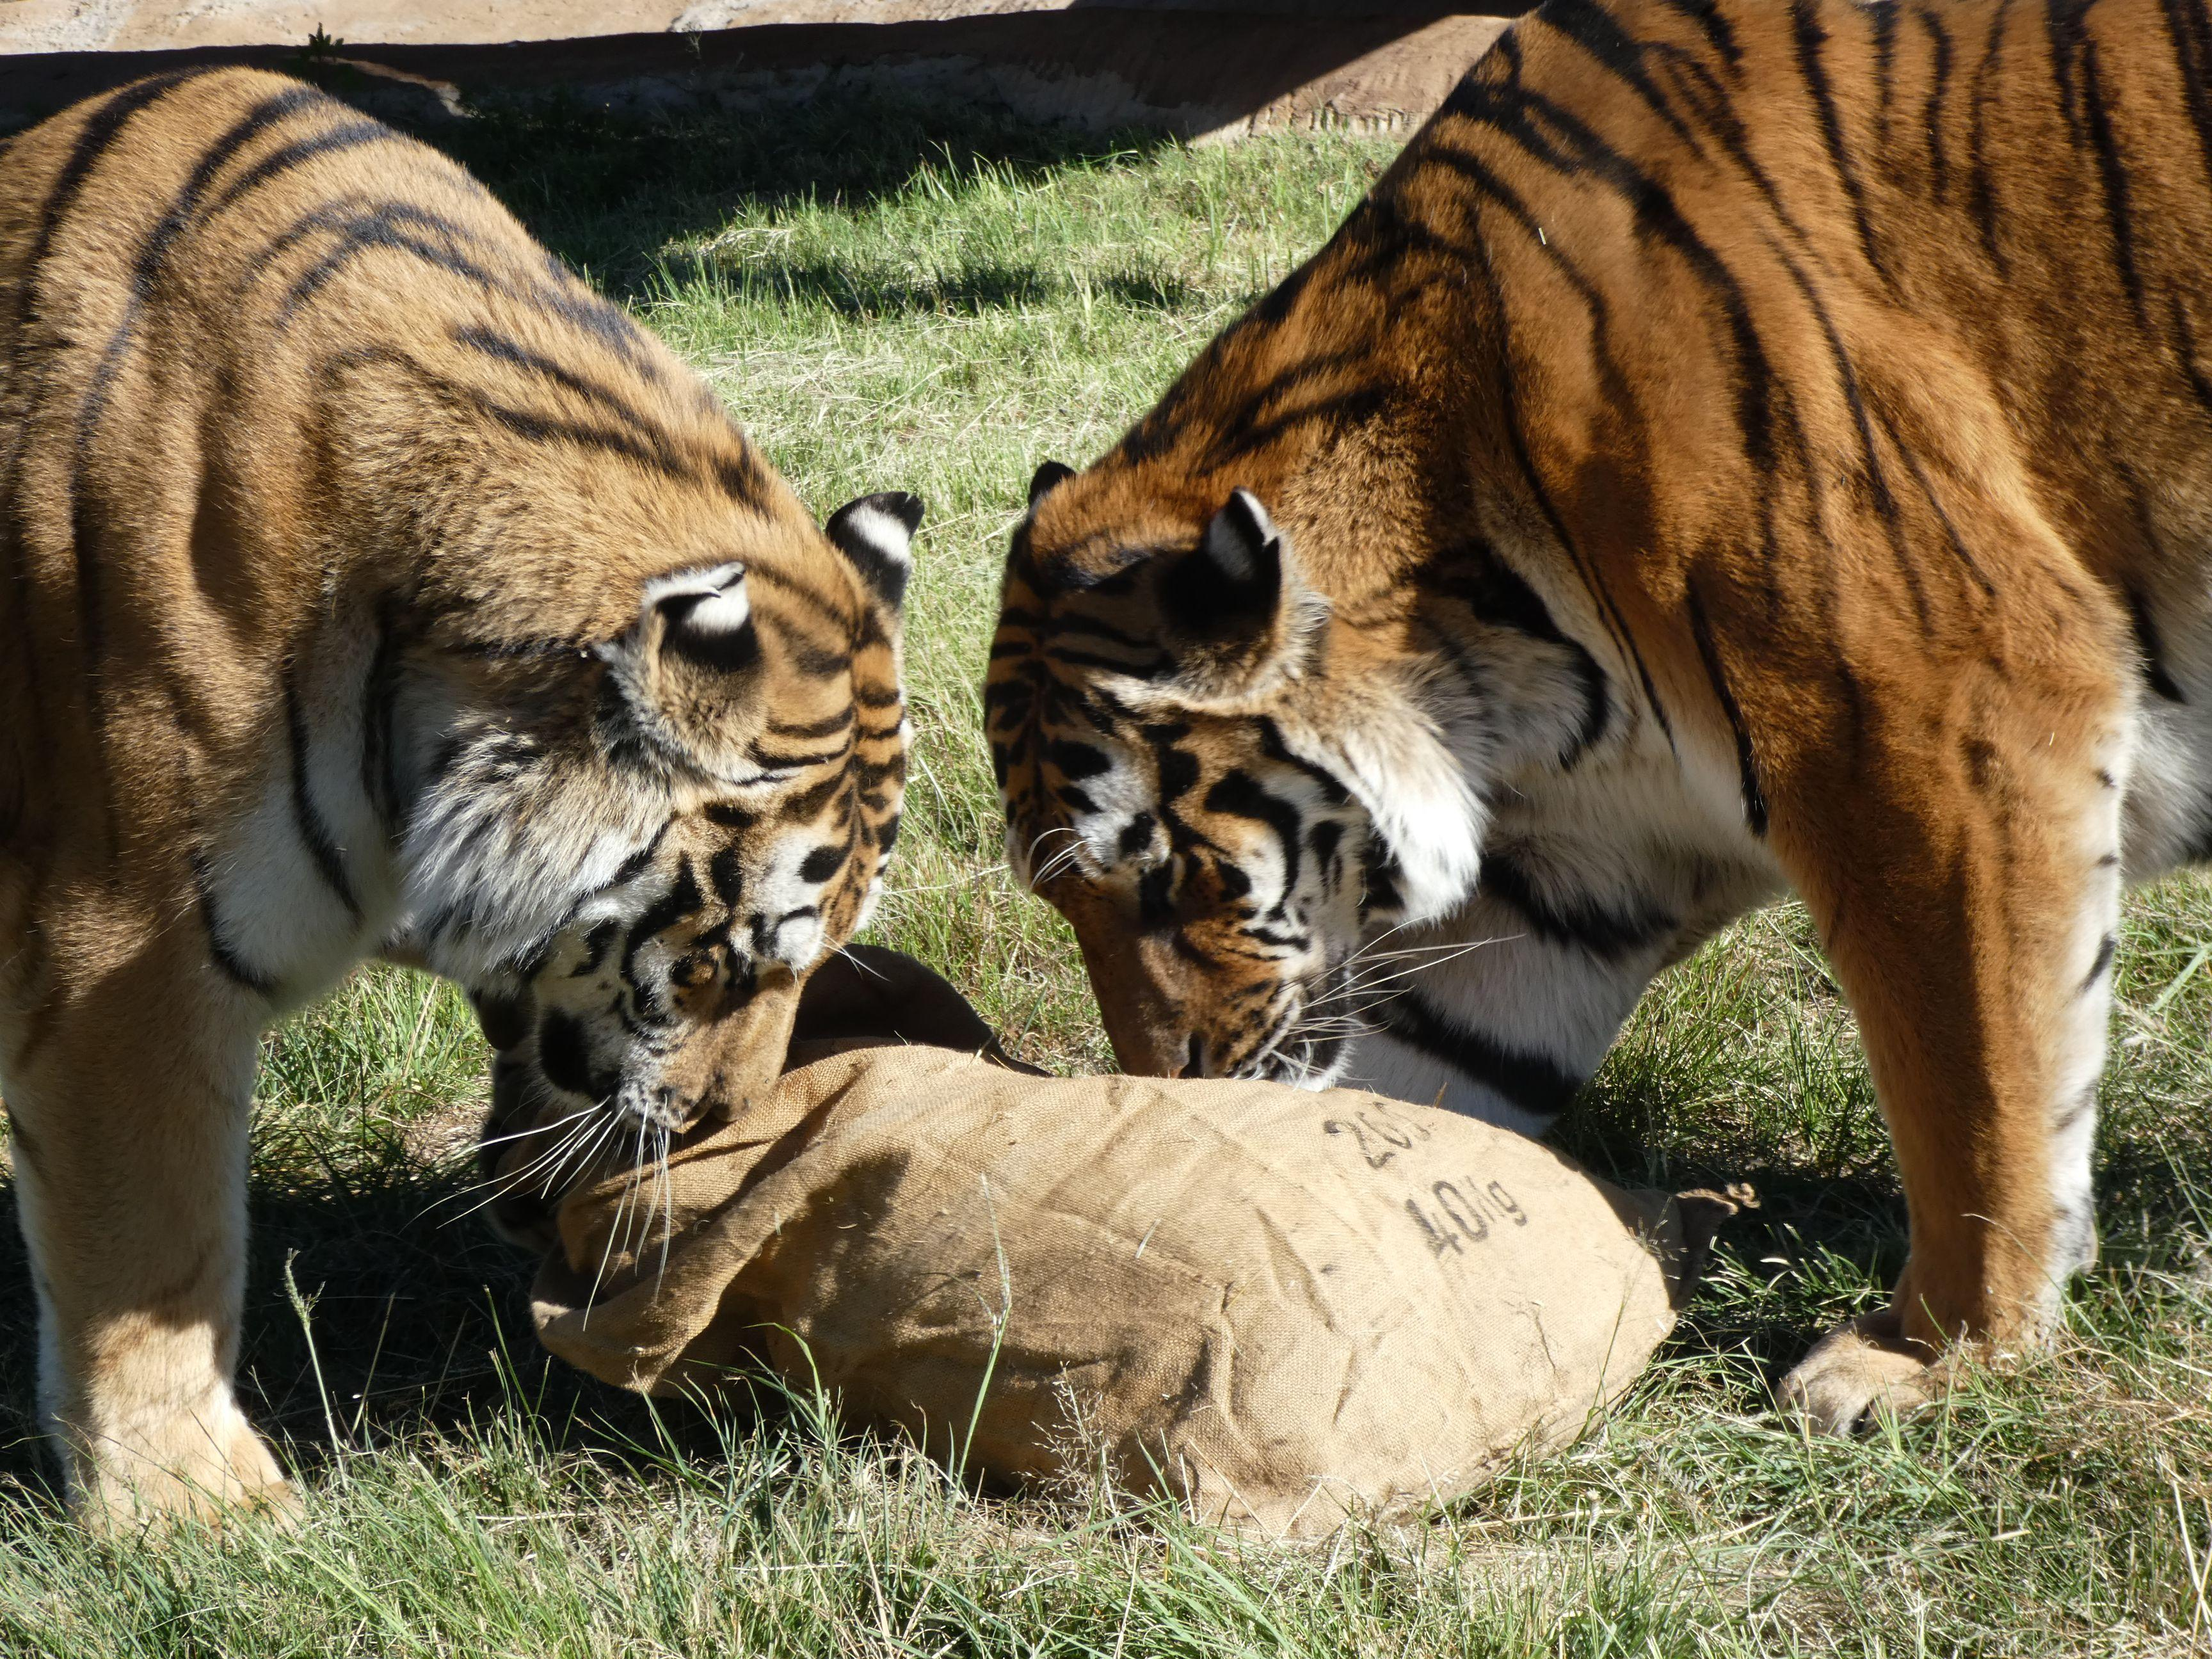 Tigers with enrichment